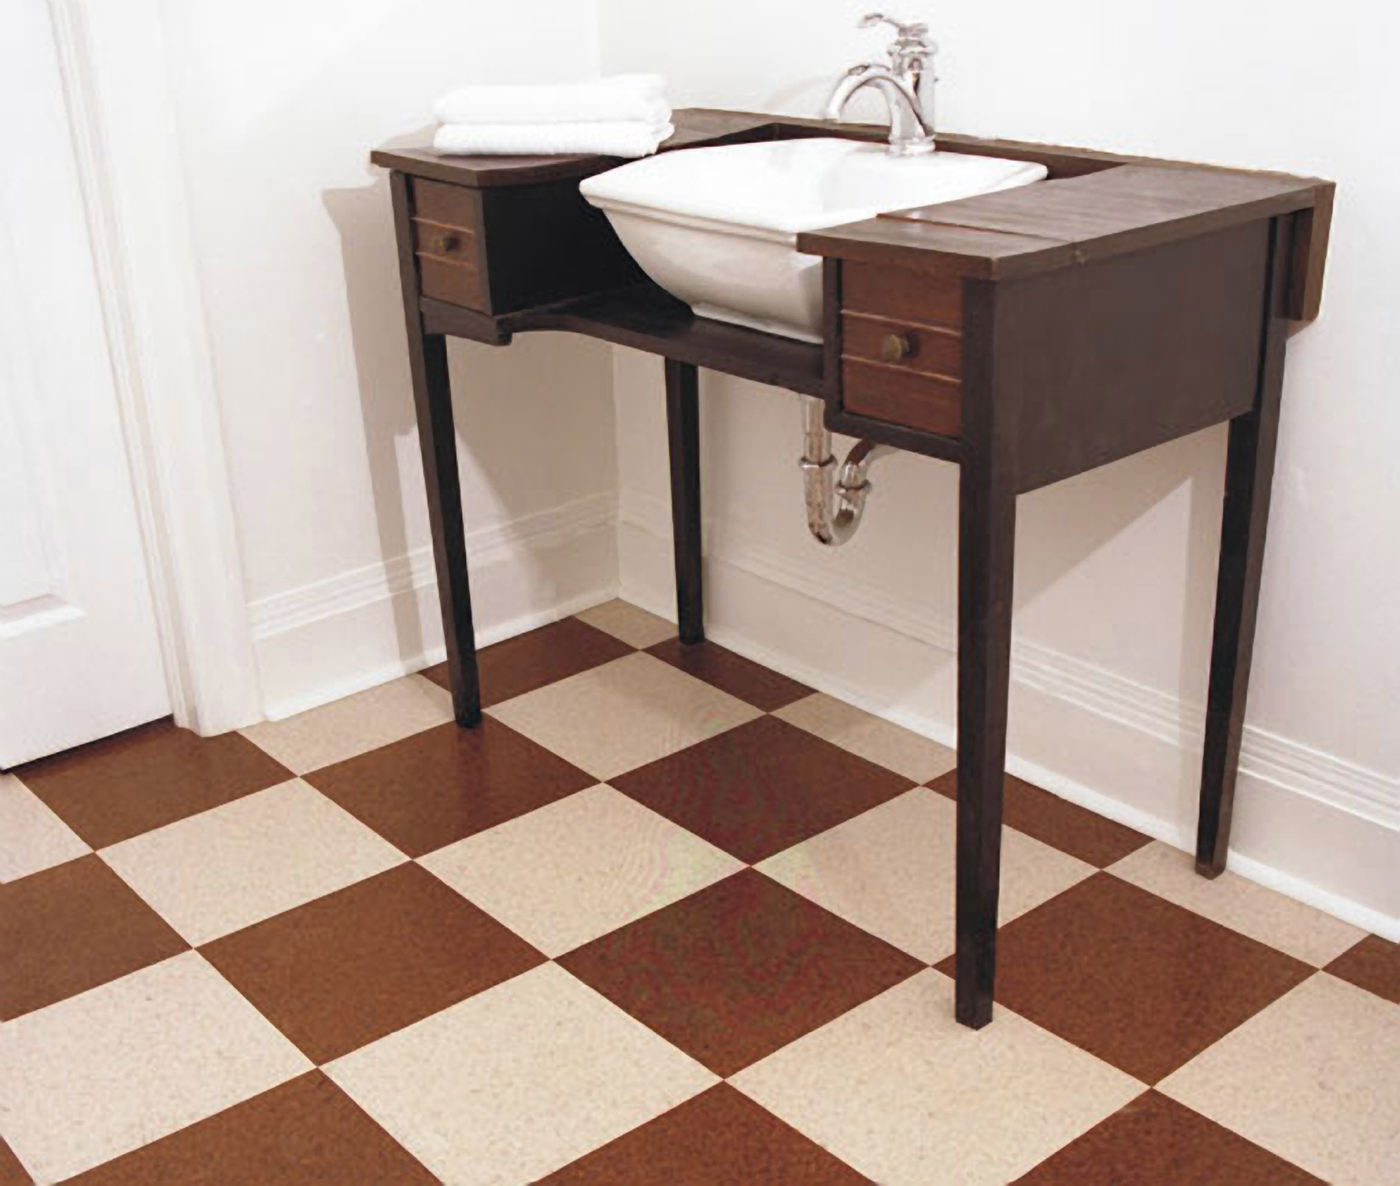 Cork innovations new thicker glue down cork tiles lower impact on cork flooring provides cushioned surface for all roomsthe surface of tile floors can be hard on joints for people with arthritis chronic pain dailygadgetfo Gallery